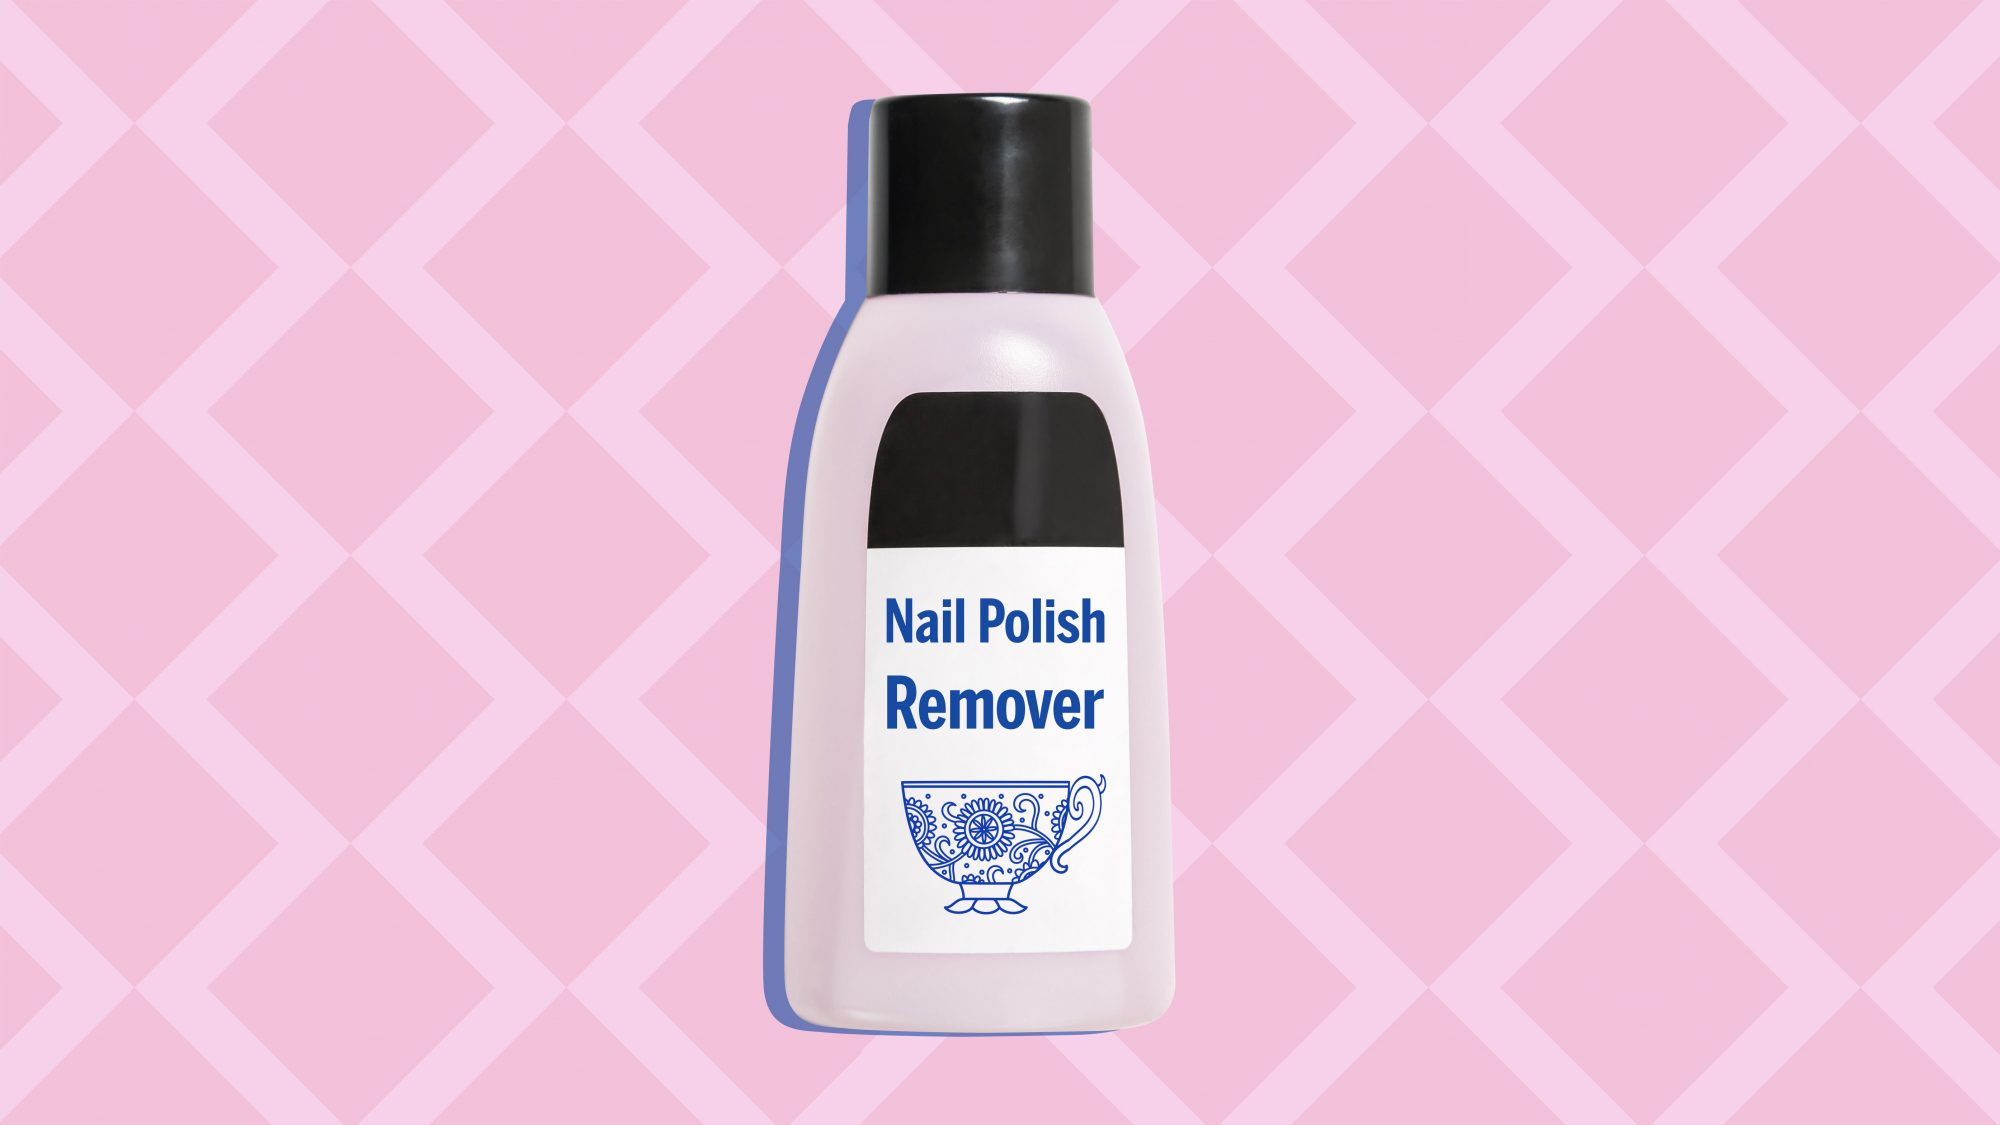 6 Little-Known Uses for Nail-Polish Remover That Have Nothing to Do With Mani-Pedis